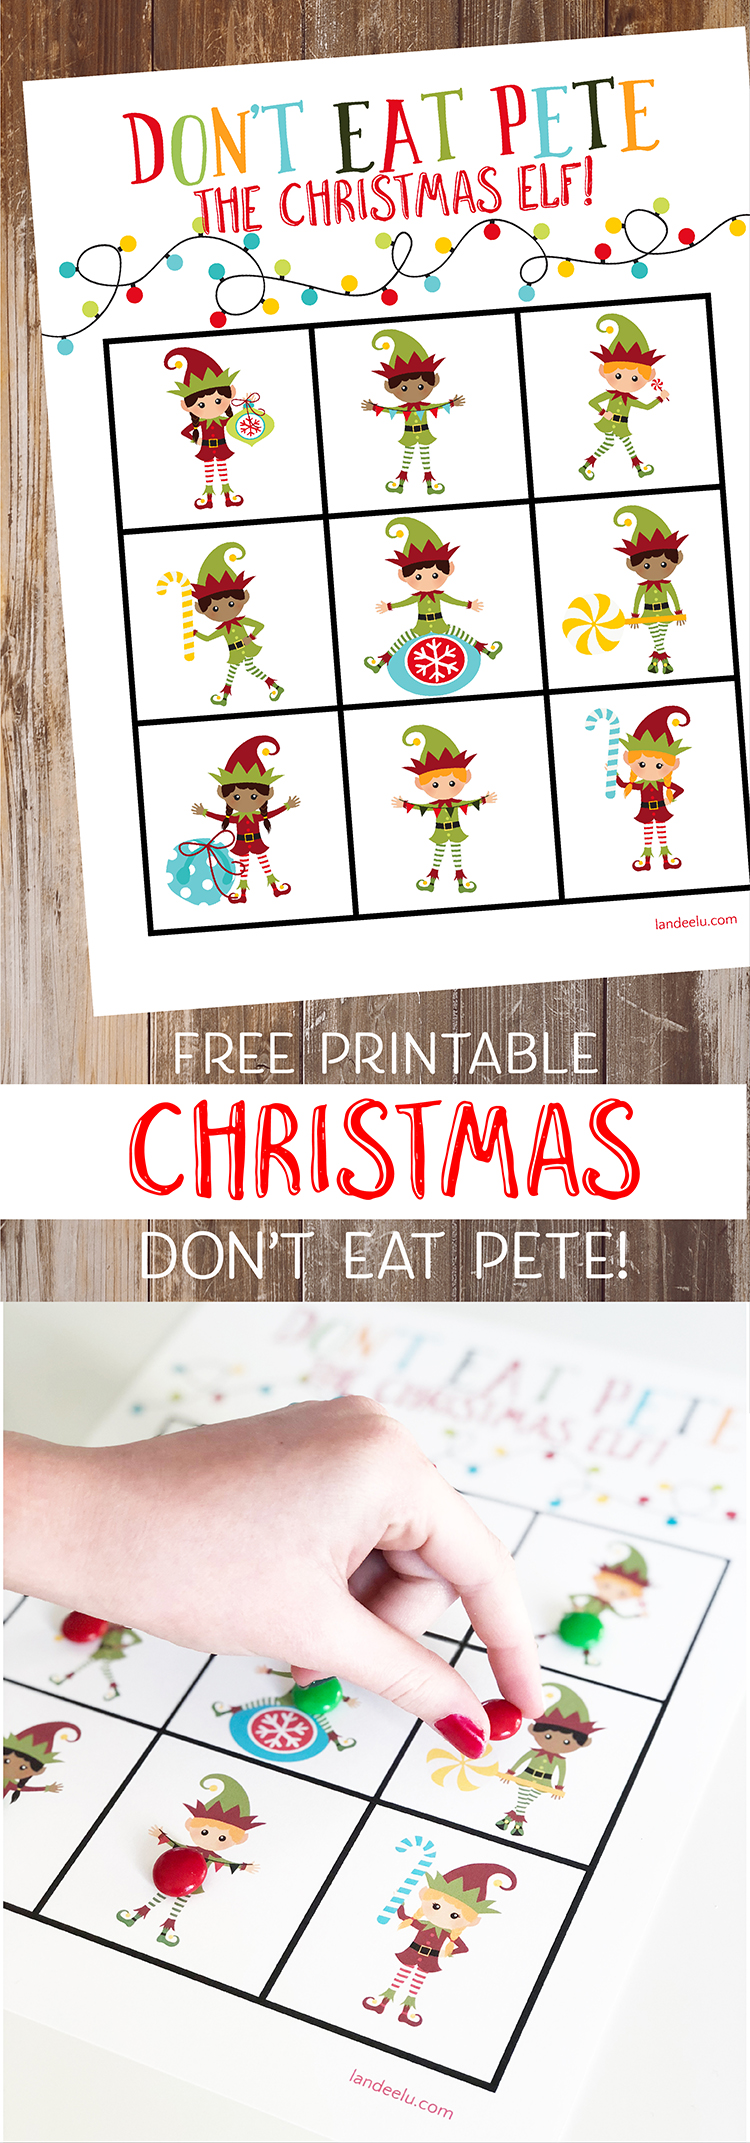 image about Don't Eat Pete Printable called Xmas Dont Consume Pete: Pleasurable Loved ones Xmas Video games